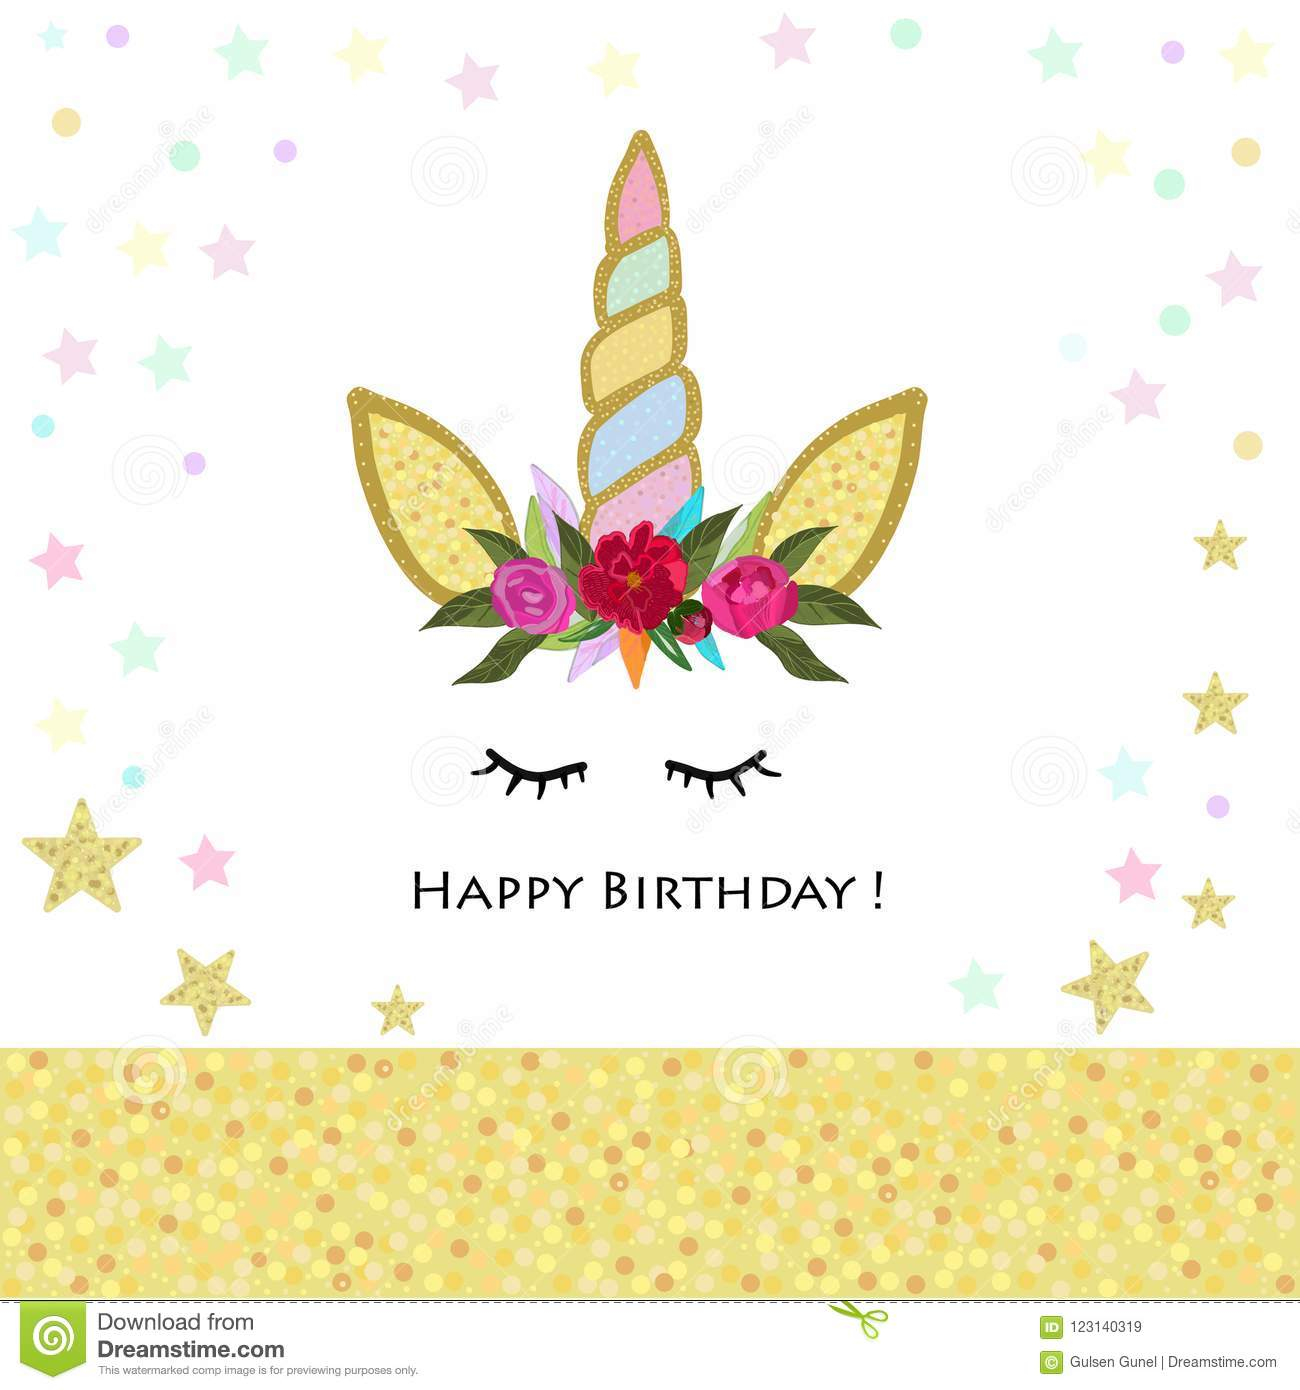 Unicorn Birthday Invitation. Magical Unicorn Birthday Party Shining ...